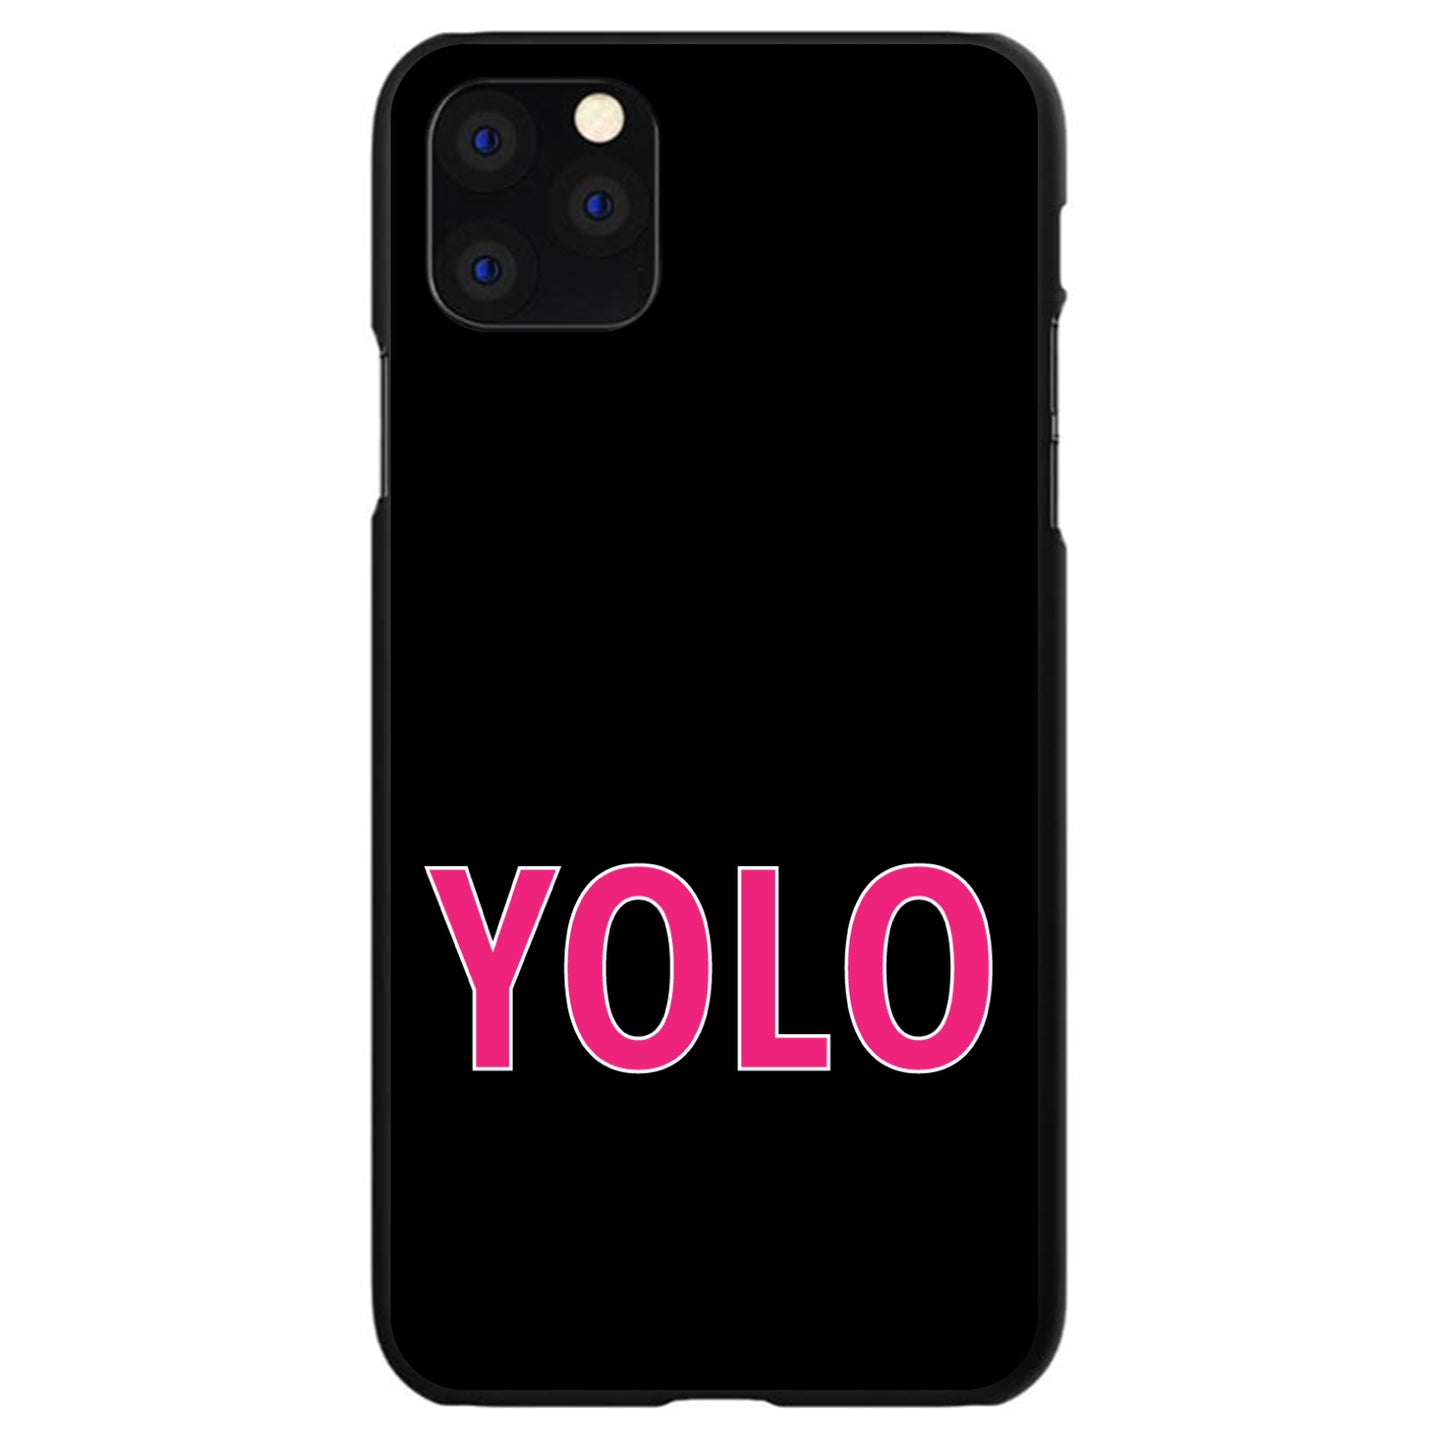 DistinctInk® Hard Plastic Snap-On Case for Apple iPhone - Black Pink YOLO